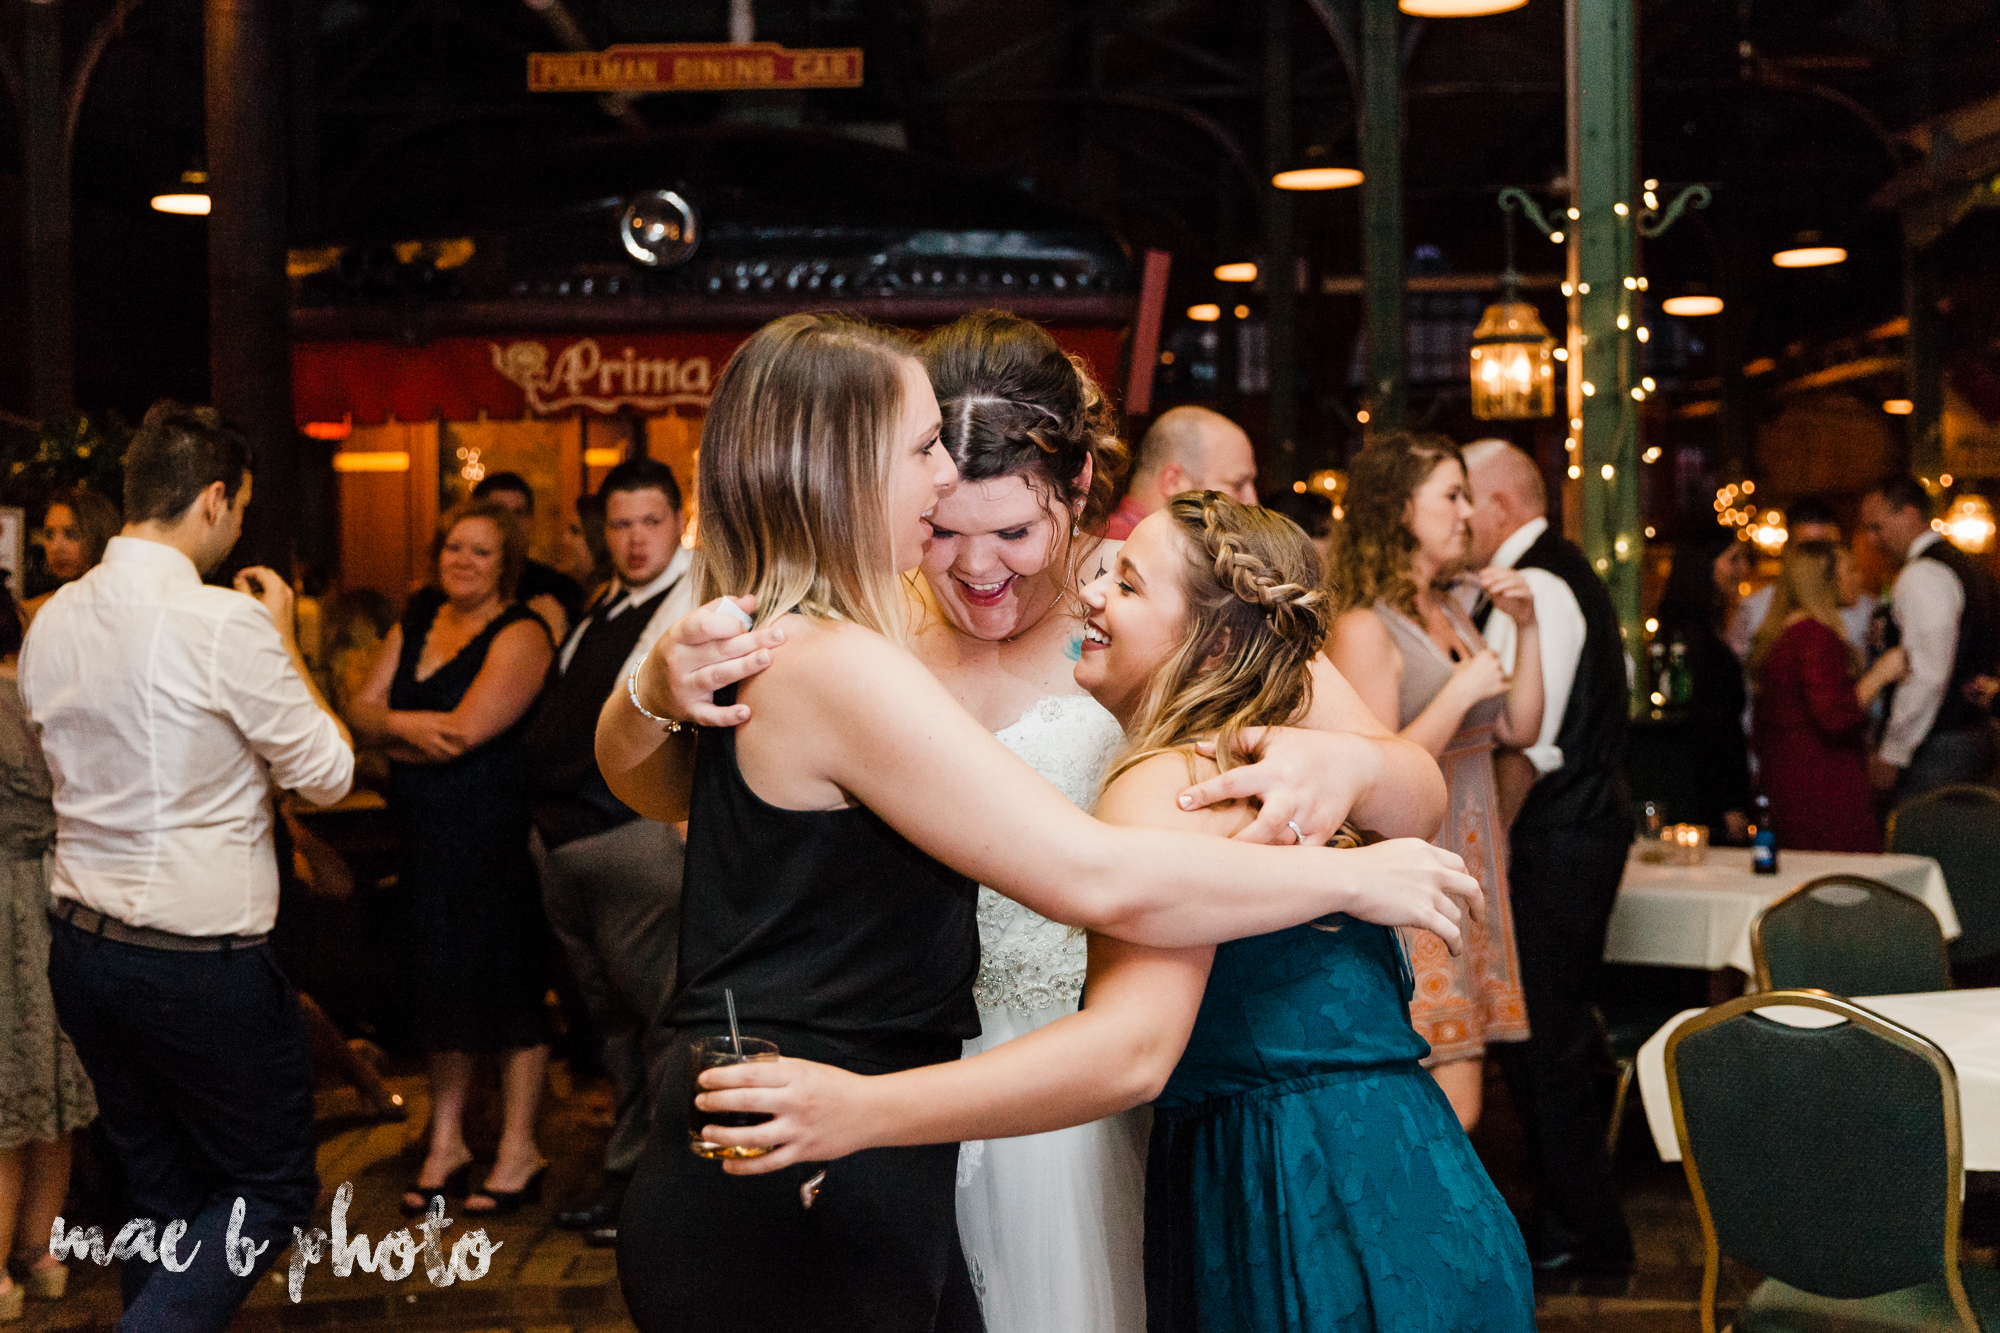 Kristina and ryan's personal vintage glam fall wedding at disalvo's station restaurant and the arnold palmer latrobe country club in latrobe, pa photographed by youngstown wedding photographer mae b photo-122.jpg